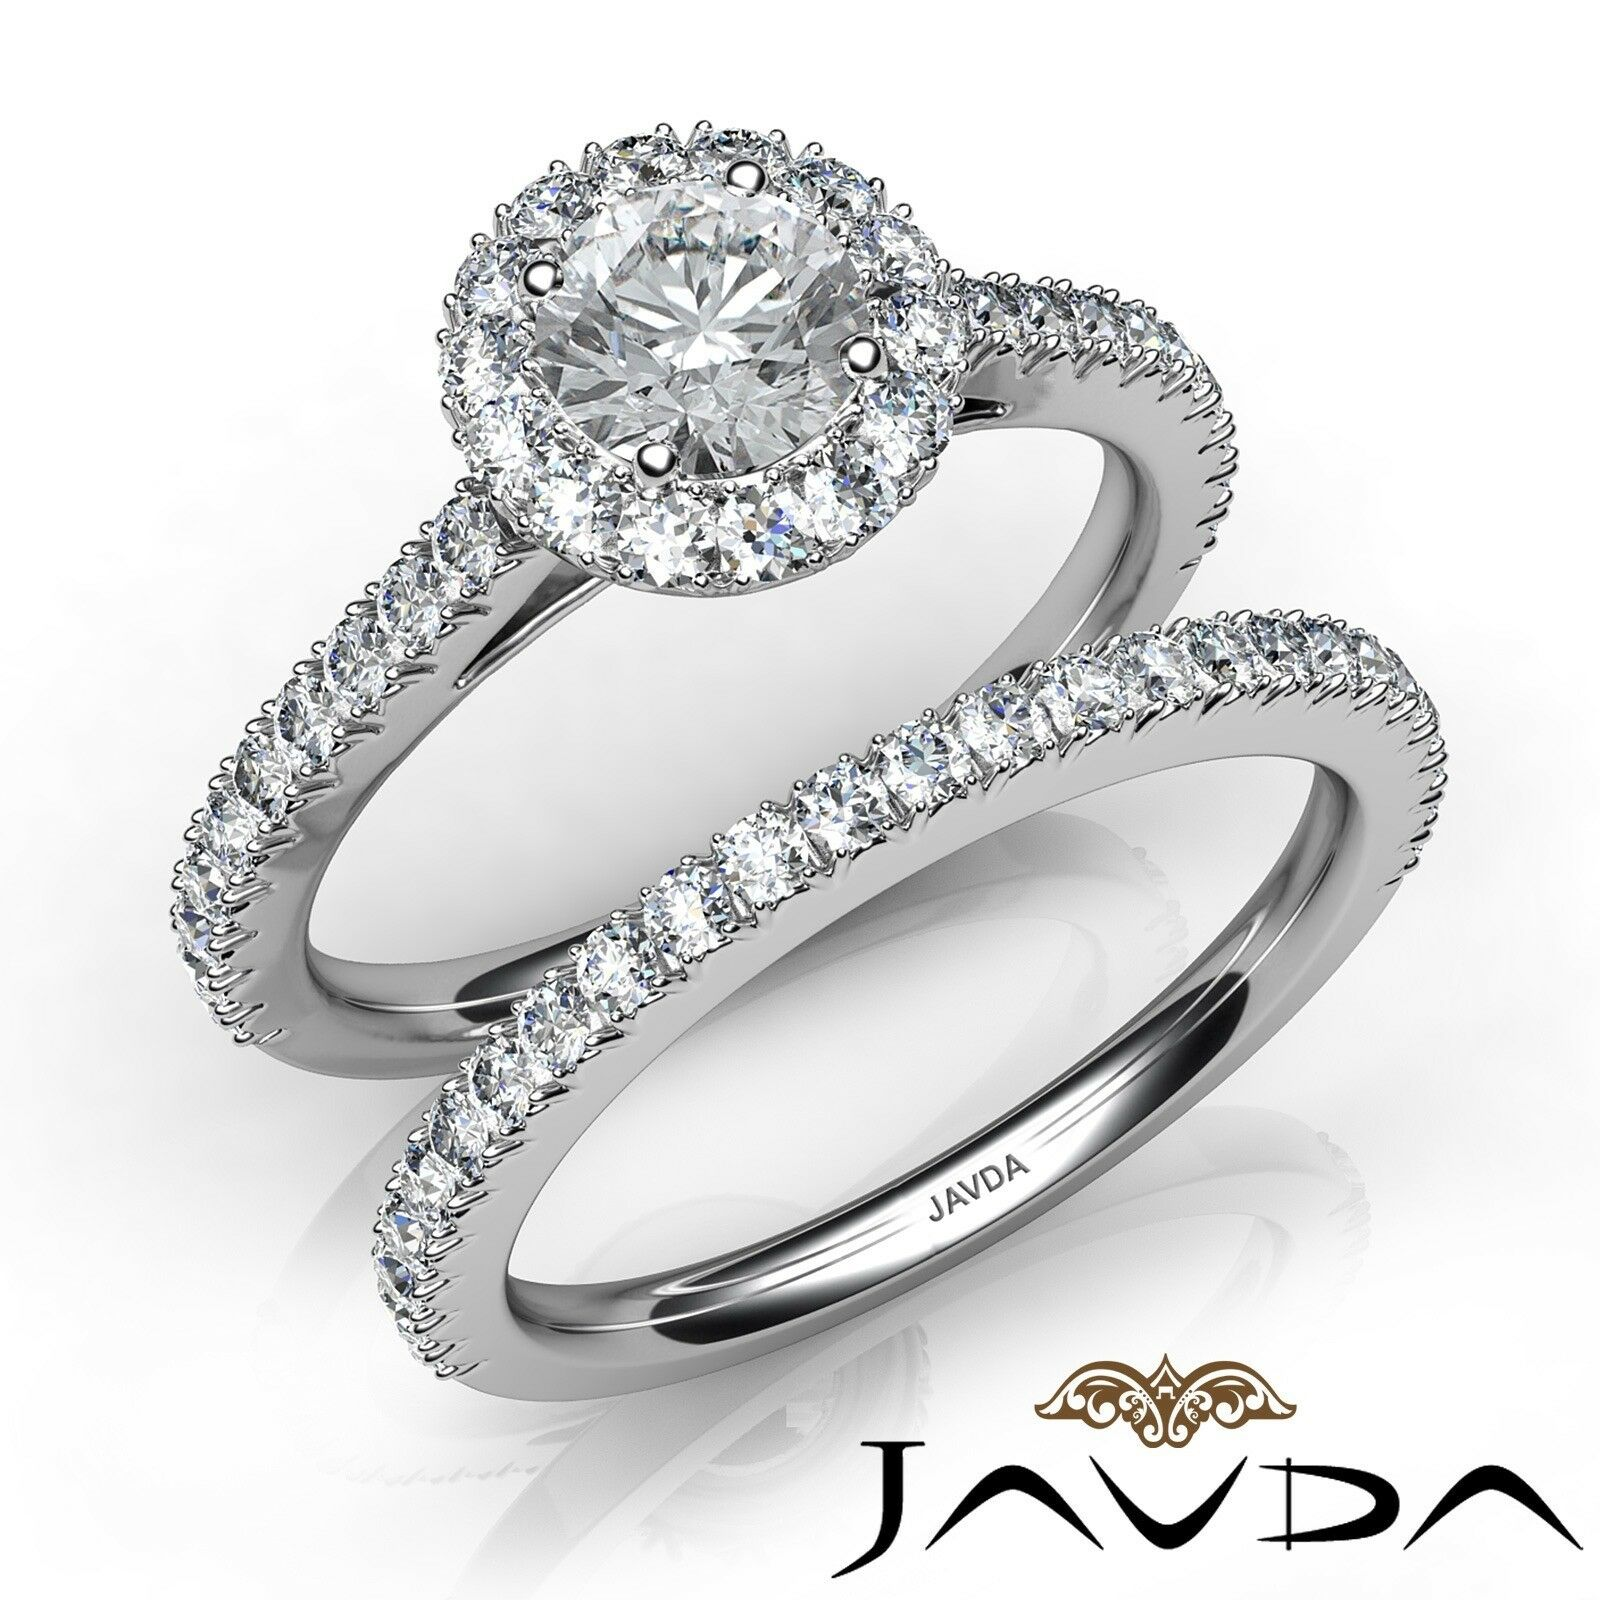 1.9ctw French Pave Shank Bridal Round Diamond Engagement Ring GIA E-VVS2 W Gold